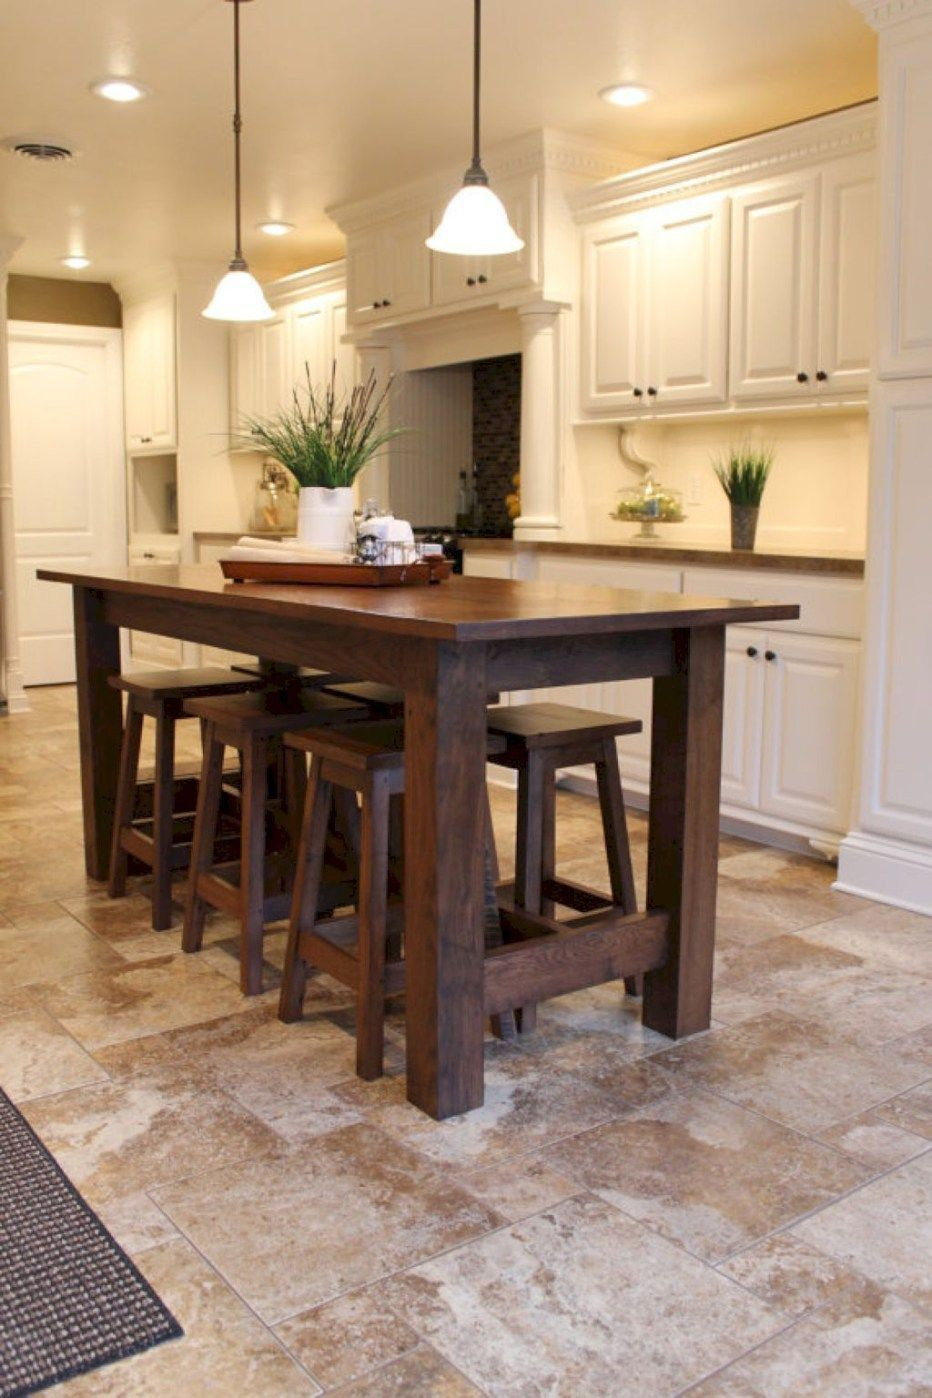 17 Great Kitchen Island Ideas Photos And Galleries Satria Baja Hitam Kitchen Island With Seating Farmhouse Kitchen Island Kitchen Island Table